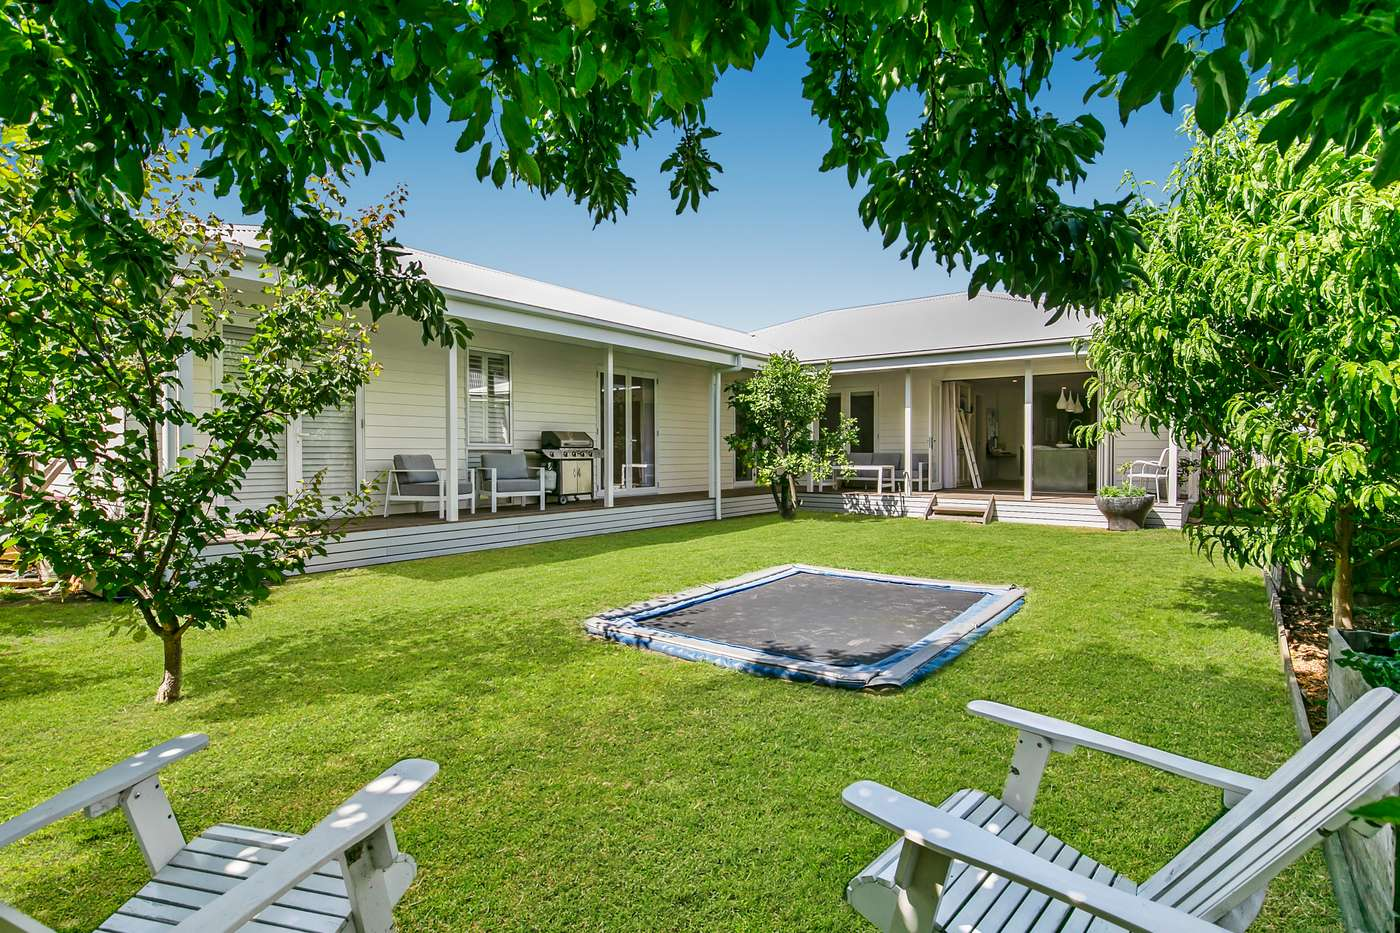 Main view of Homely house listing, 47 Williams Street, Dromana, VIC 3936